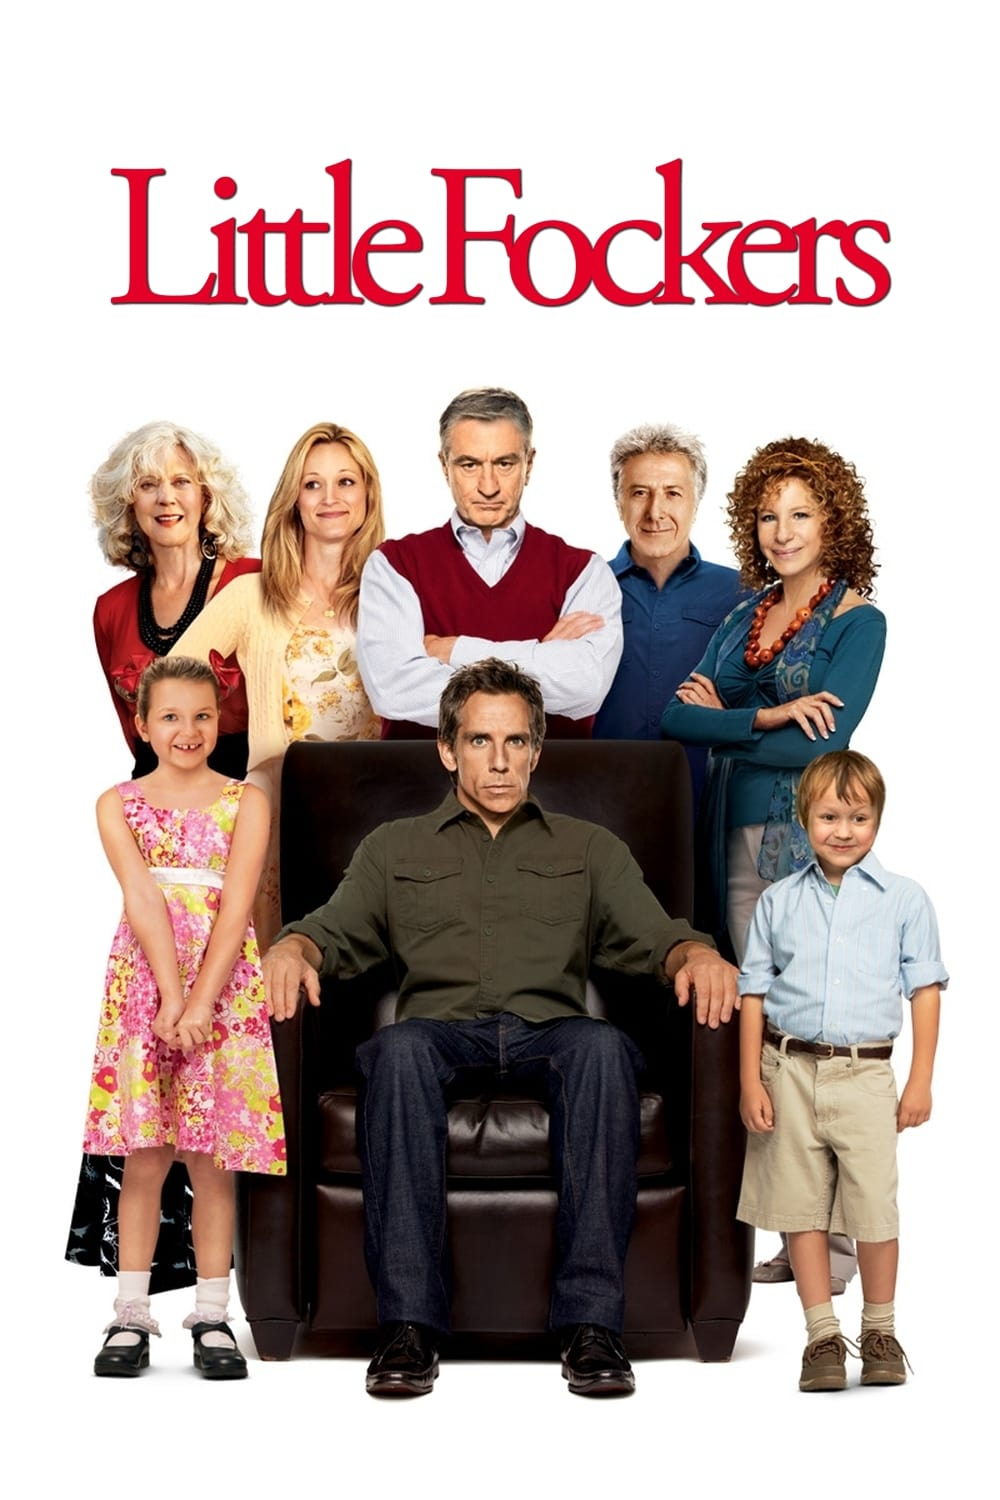 Little Fockers 2010 BluRay 1080p [4.32 GB] 720p [1.06 GB] 480p [566 MB] [Hindi DD 5.1+ English DD 5.1] | G-Drive